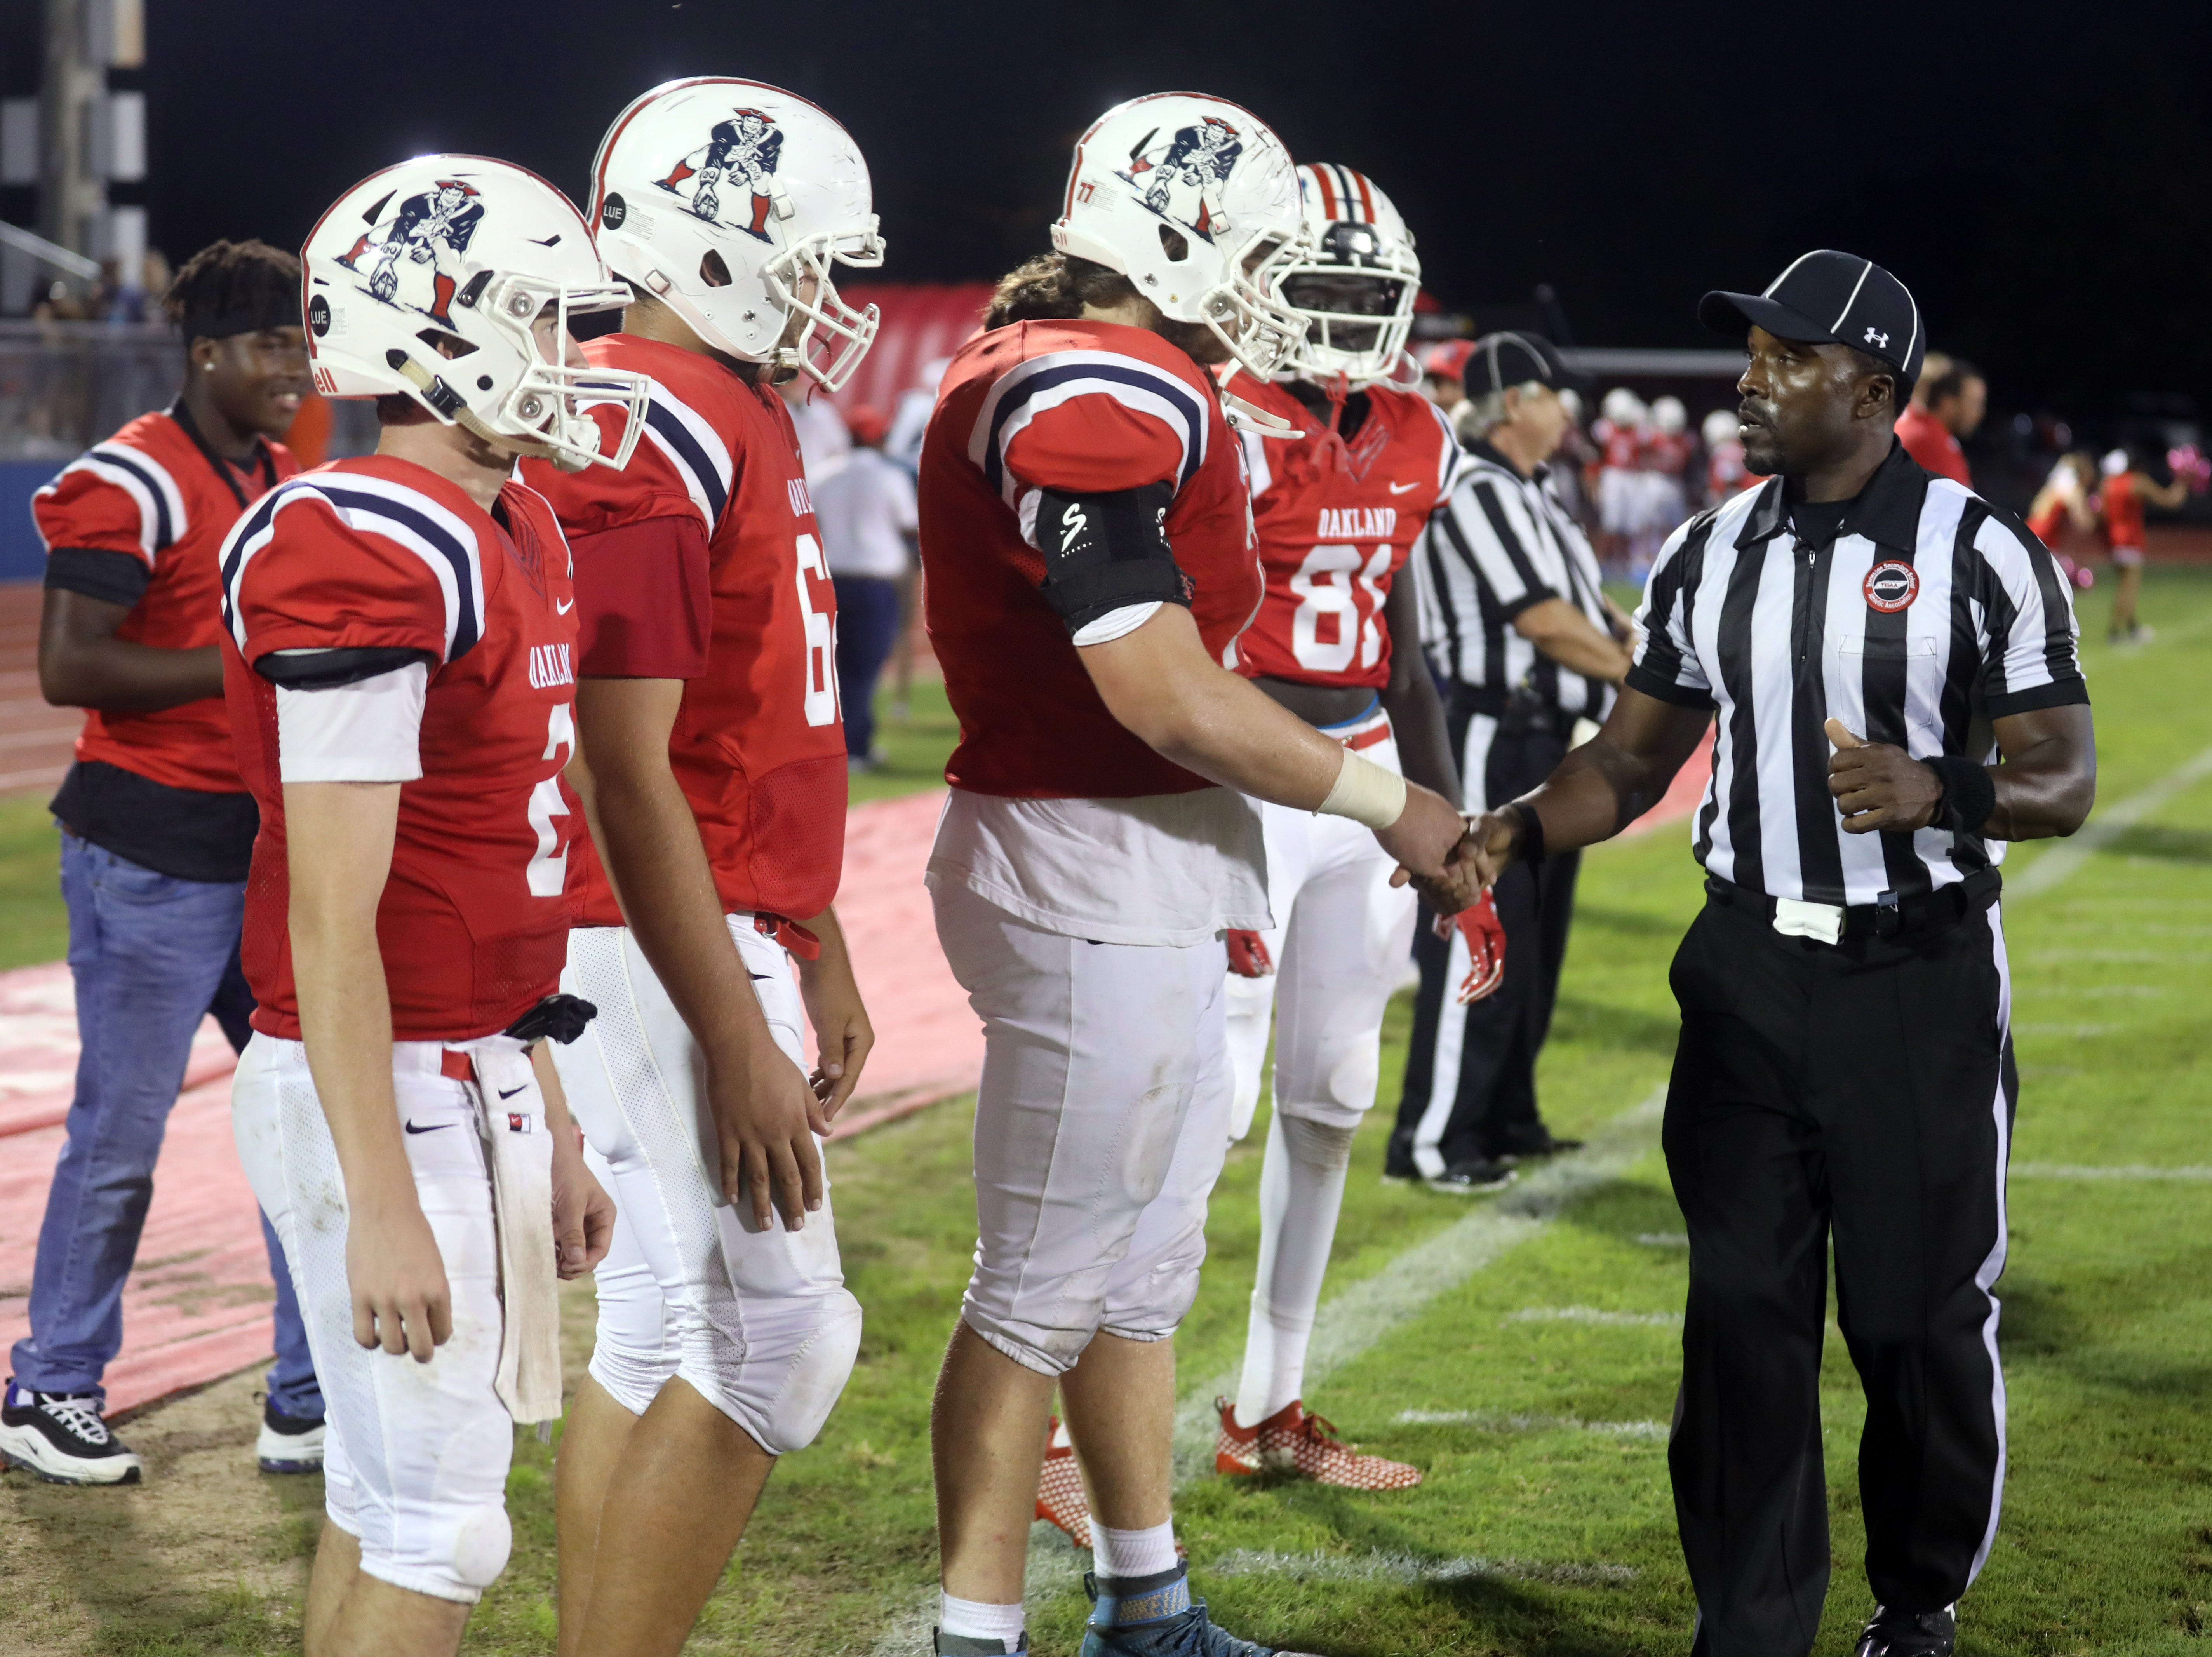 A ref greets Oakland players before the start of their game against Franklin at Oakland High School in Murfreesboro Friday October 5, 2018.